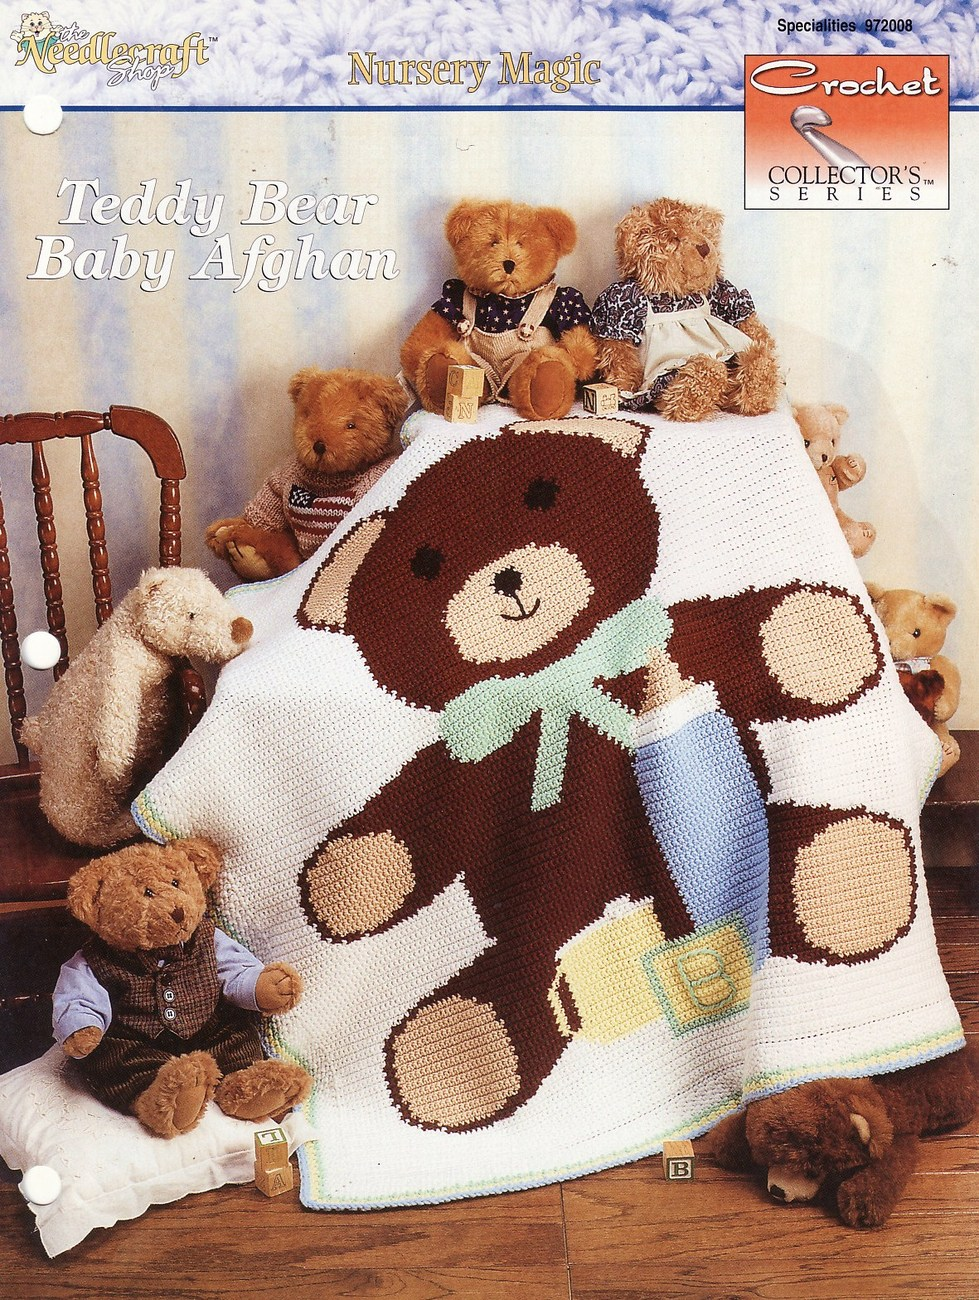 Free Teddy Bear Crochet Afghan Pattern : Teddy Bear Baby Afghan Crochet Pattern Blanket Infants ...